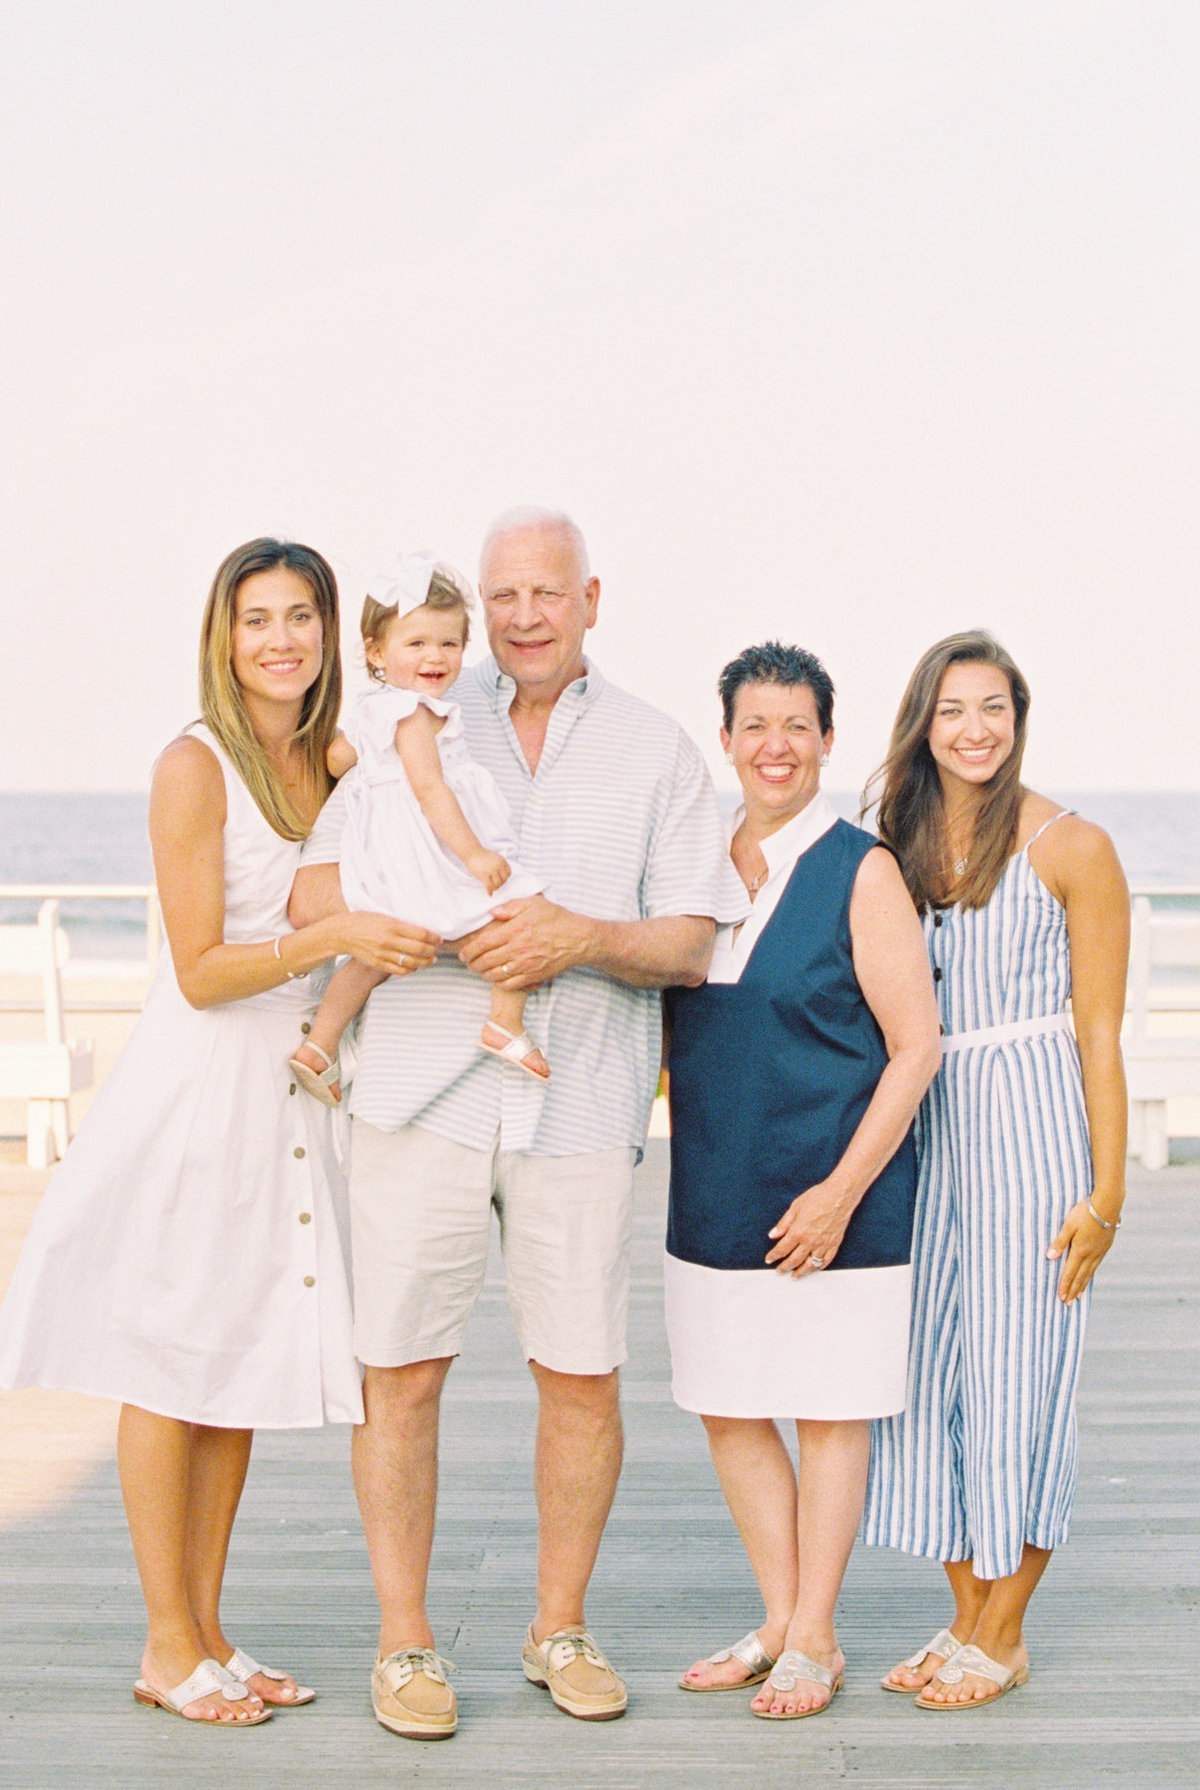 Michelle Behre Photography NJ Fine Art Photographer Seaside Family Lifestyle Family Portrait Session in Avon-by-the-Sea-109